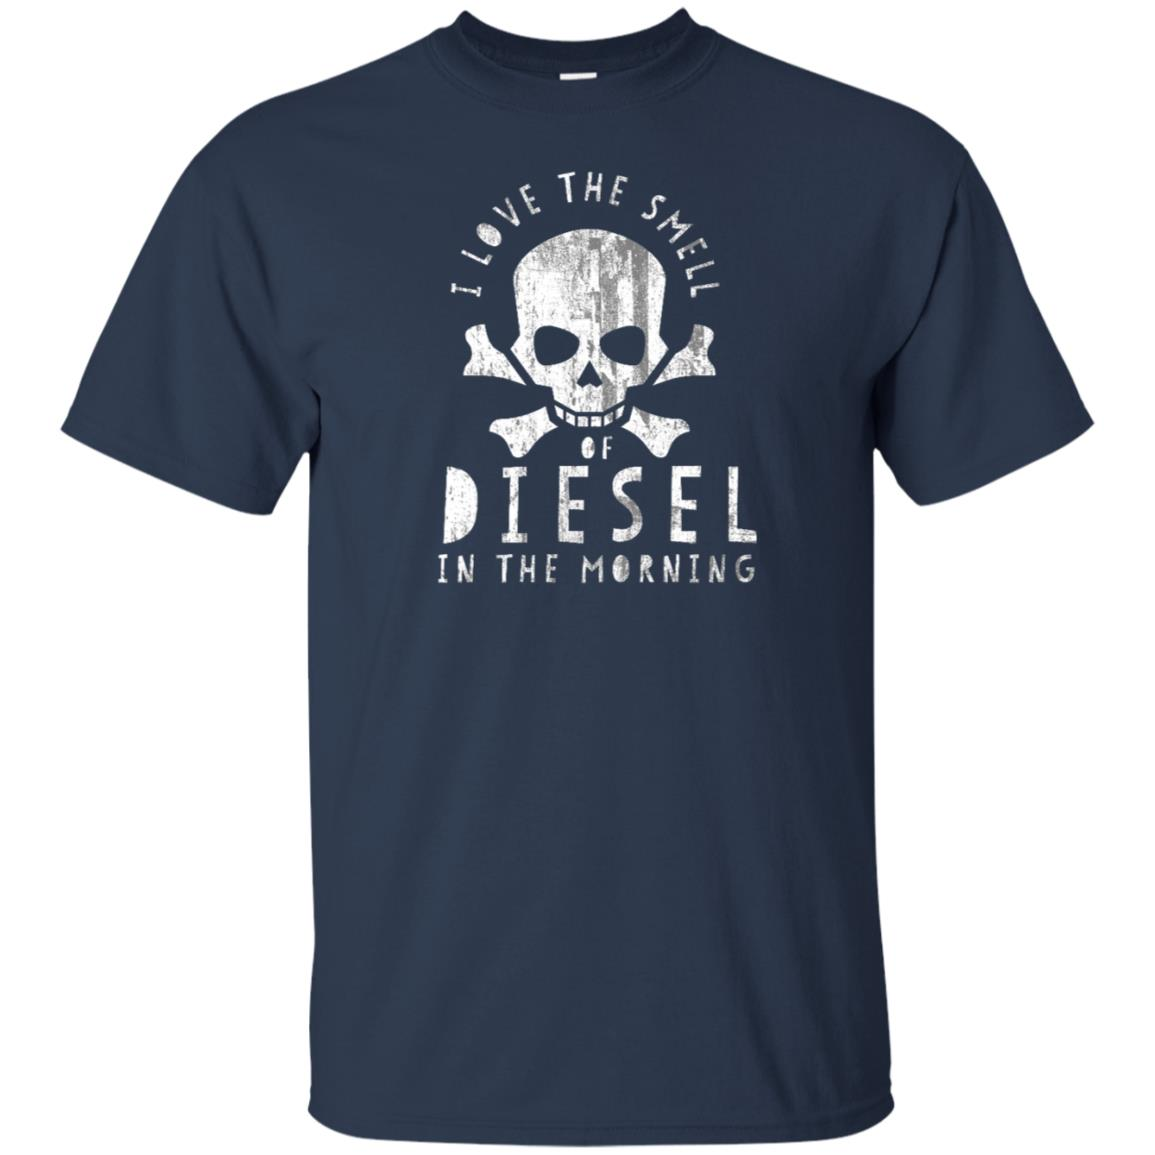 I Love the Smell of Diesel in the Morning-1 Unisex Short Sleeve